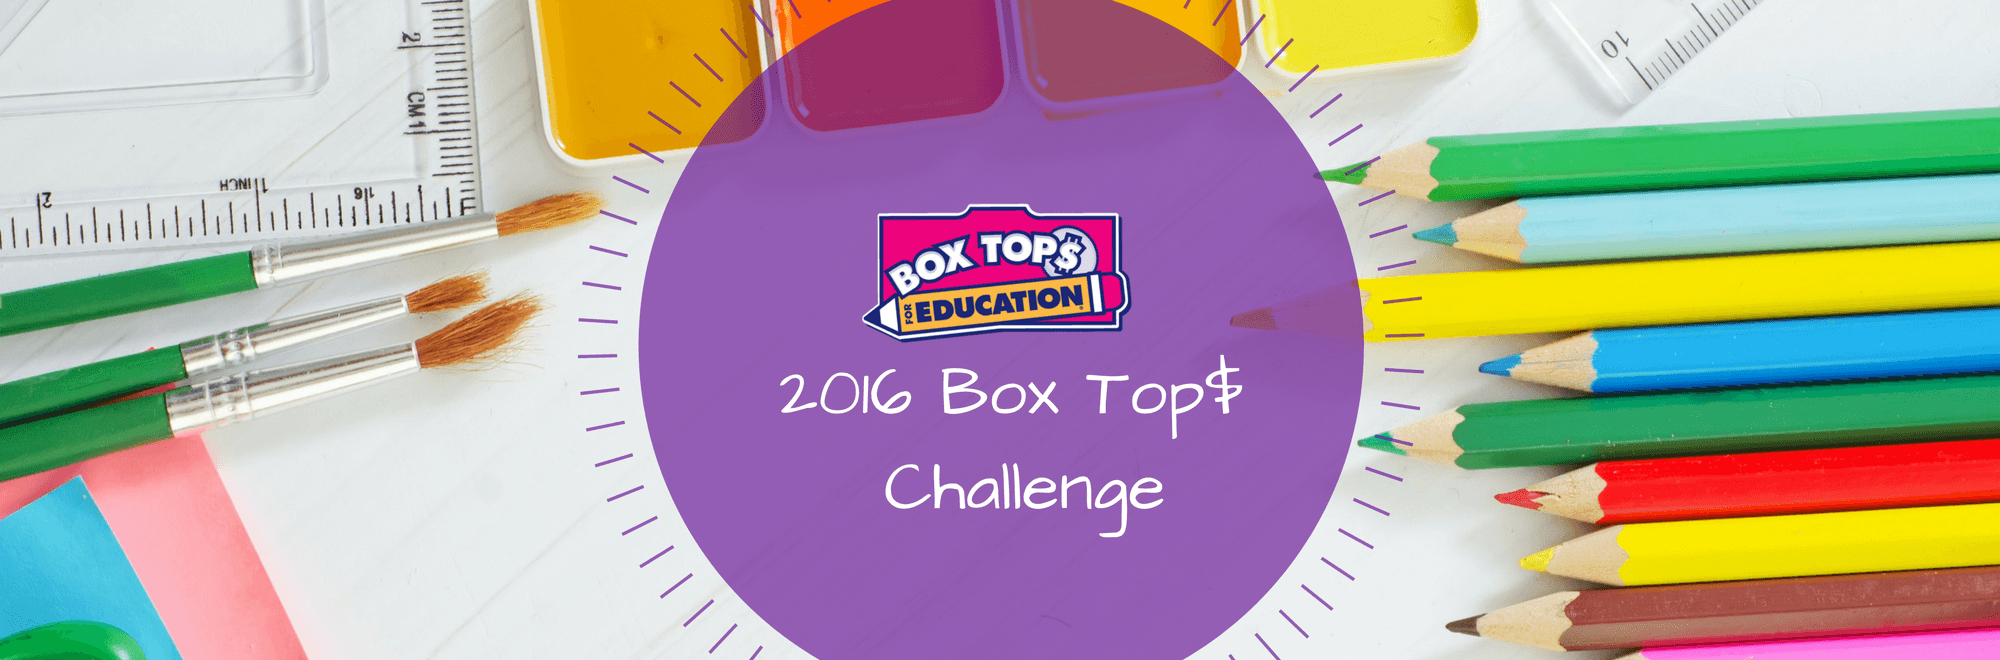 NEW Box Tops Challenge Banner (2)